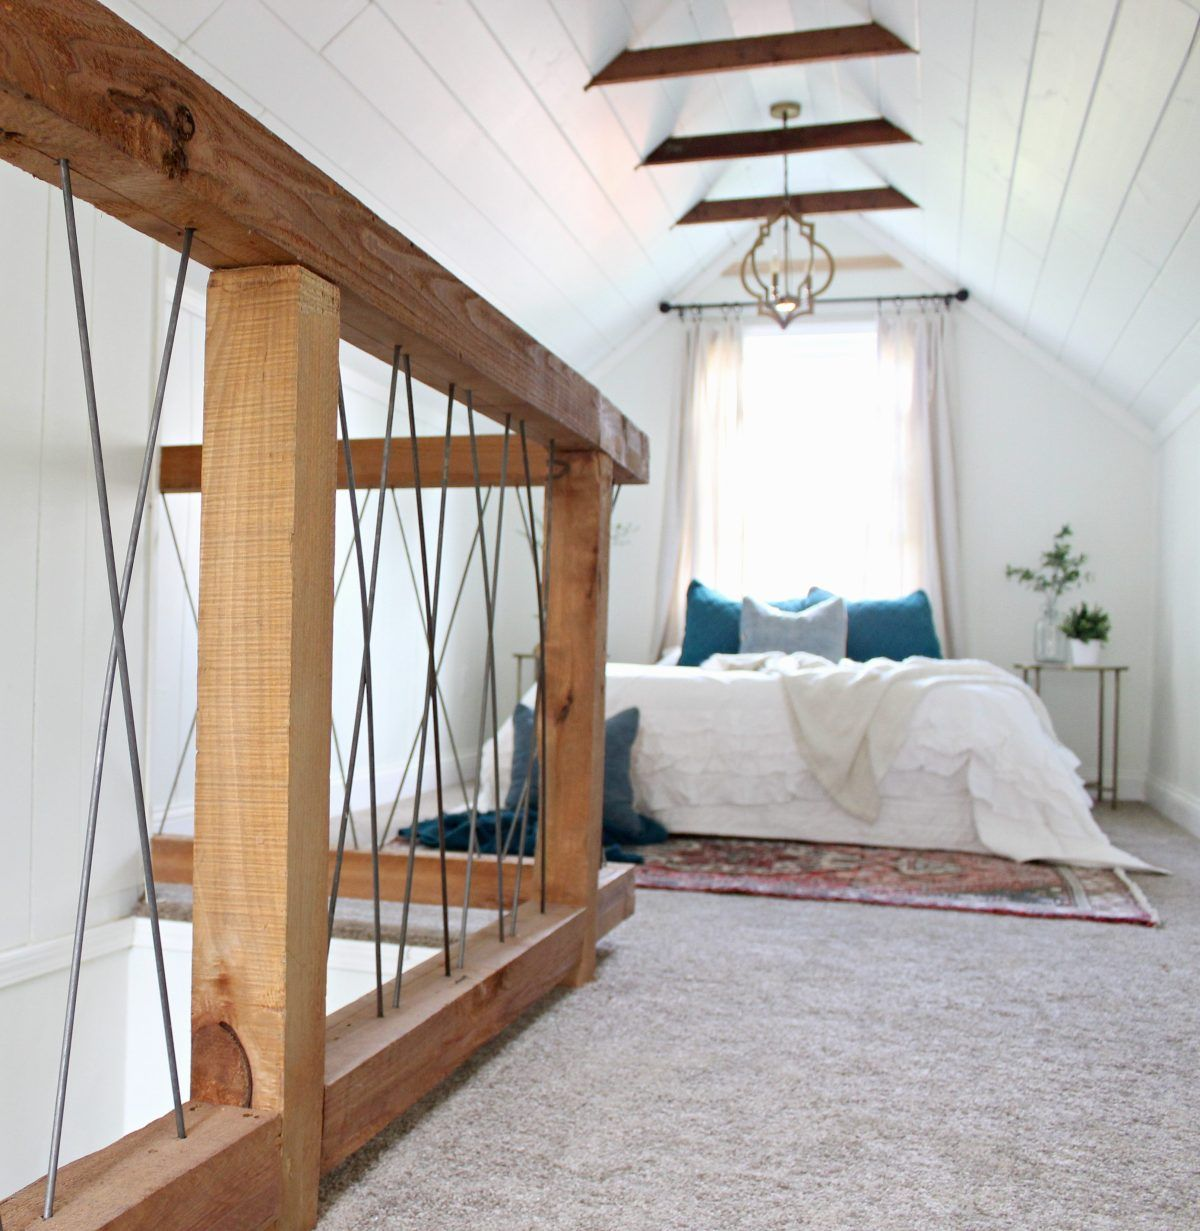 10 Creative Ways To Upgrade Your Staircase: Chesterfield Cottage Reveal: Part 2 {Attic Bedroom